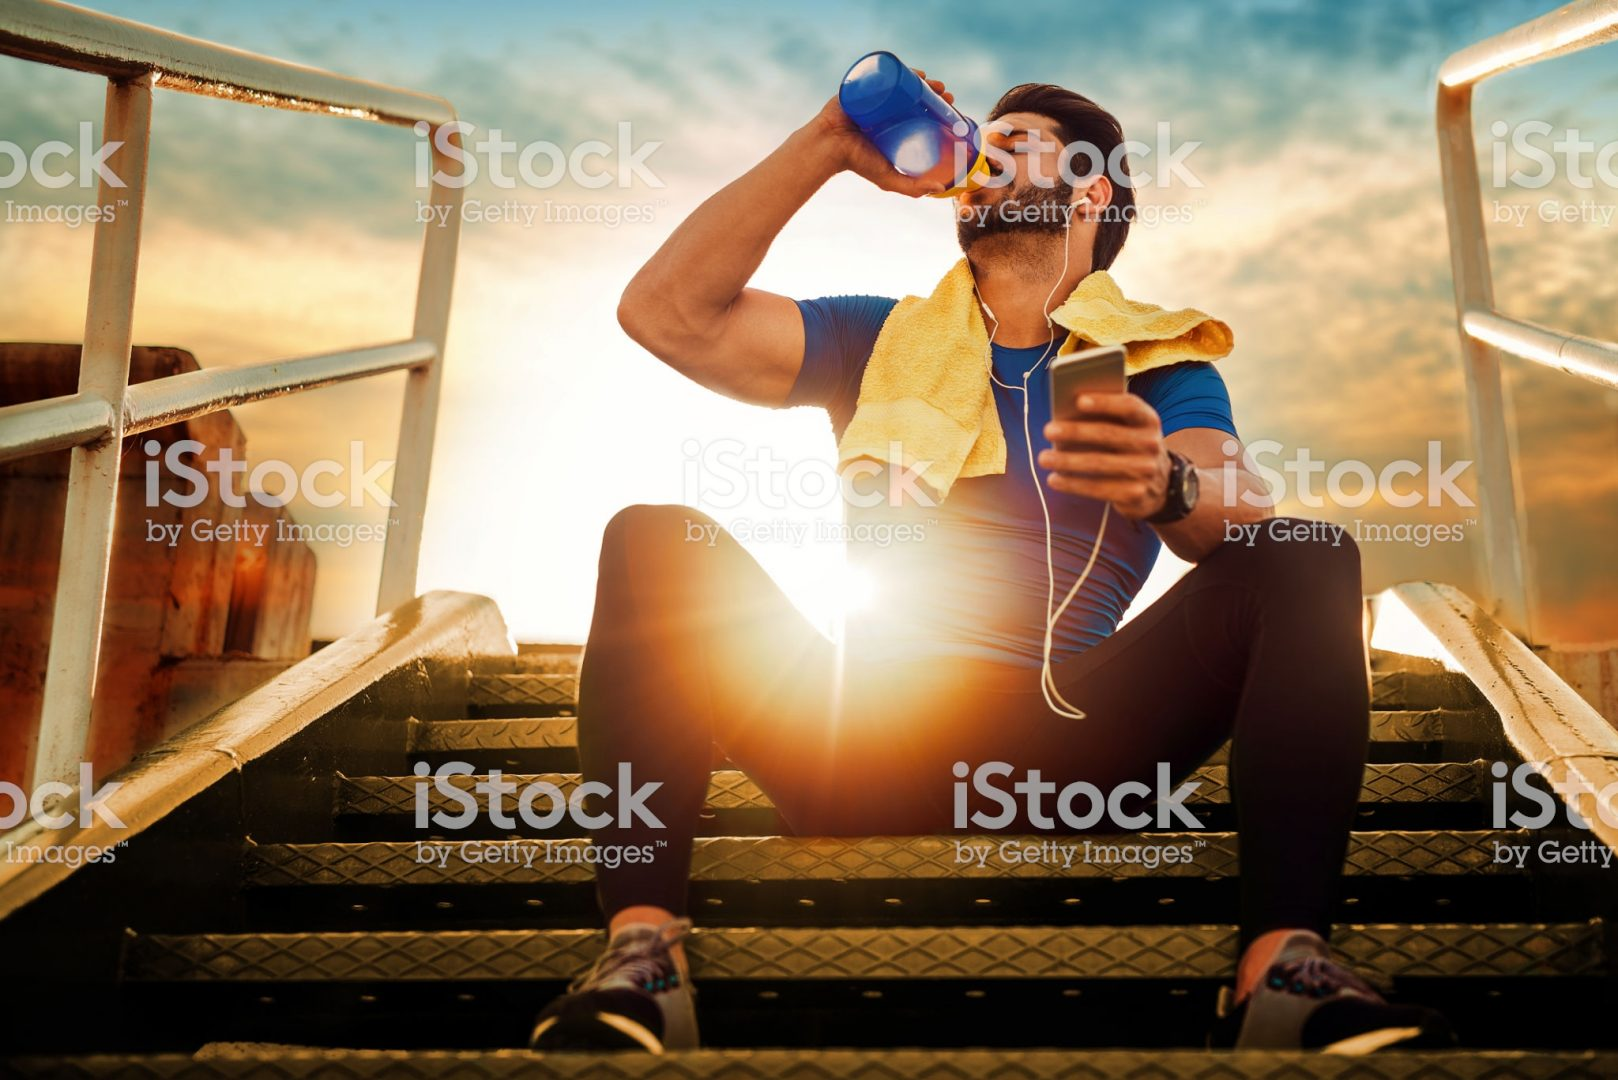 Picture of a young athletic man after training.